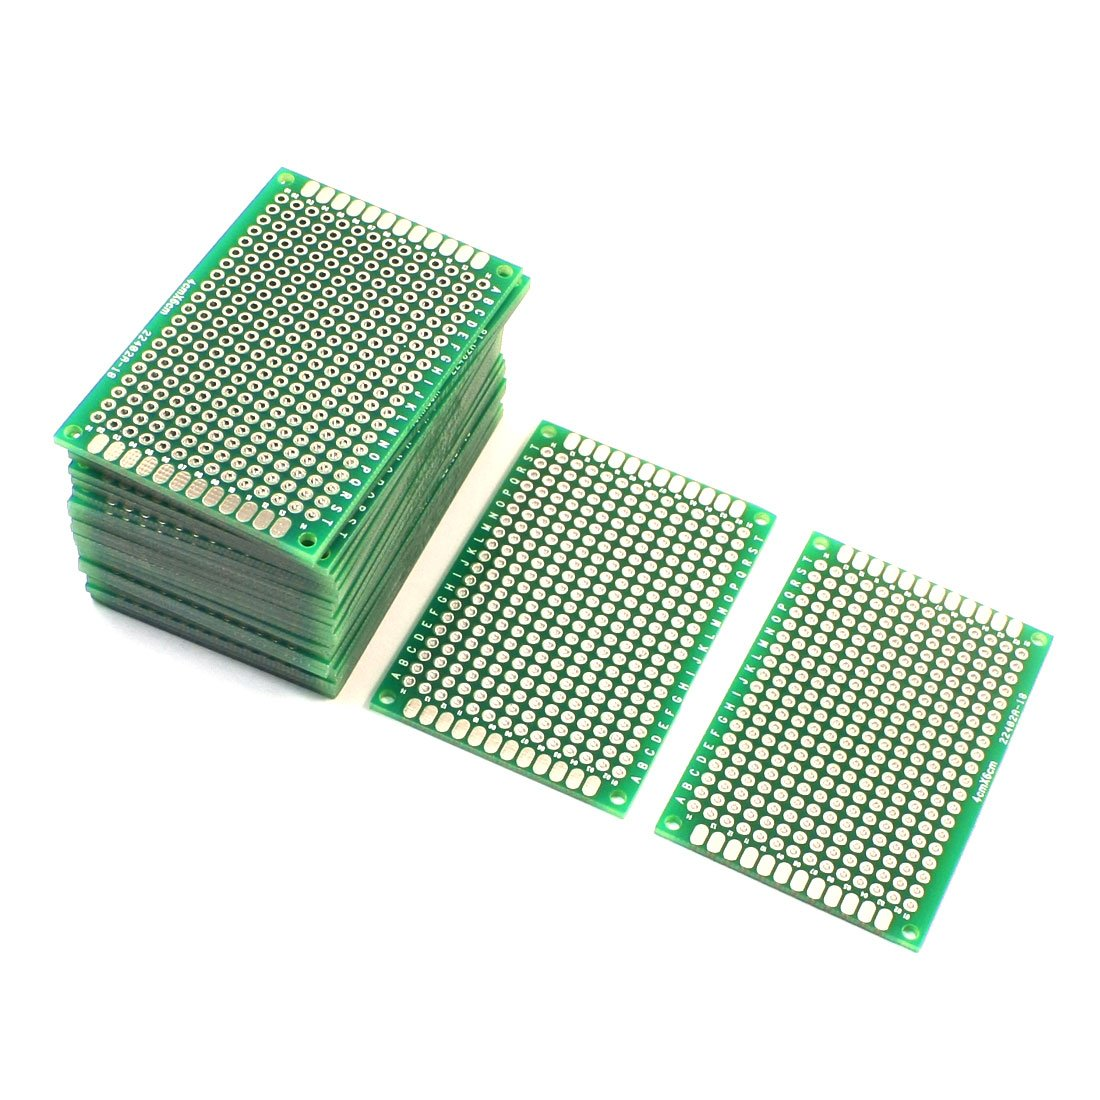 Product Name Double Sided Printed Circuit Board Uxcell A14041800ux1143 25pcs Protoboard Prototyping Pcb 4cm X 6cm